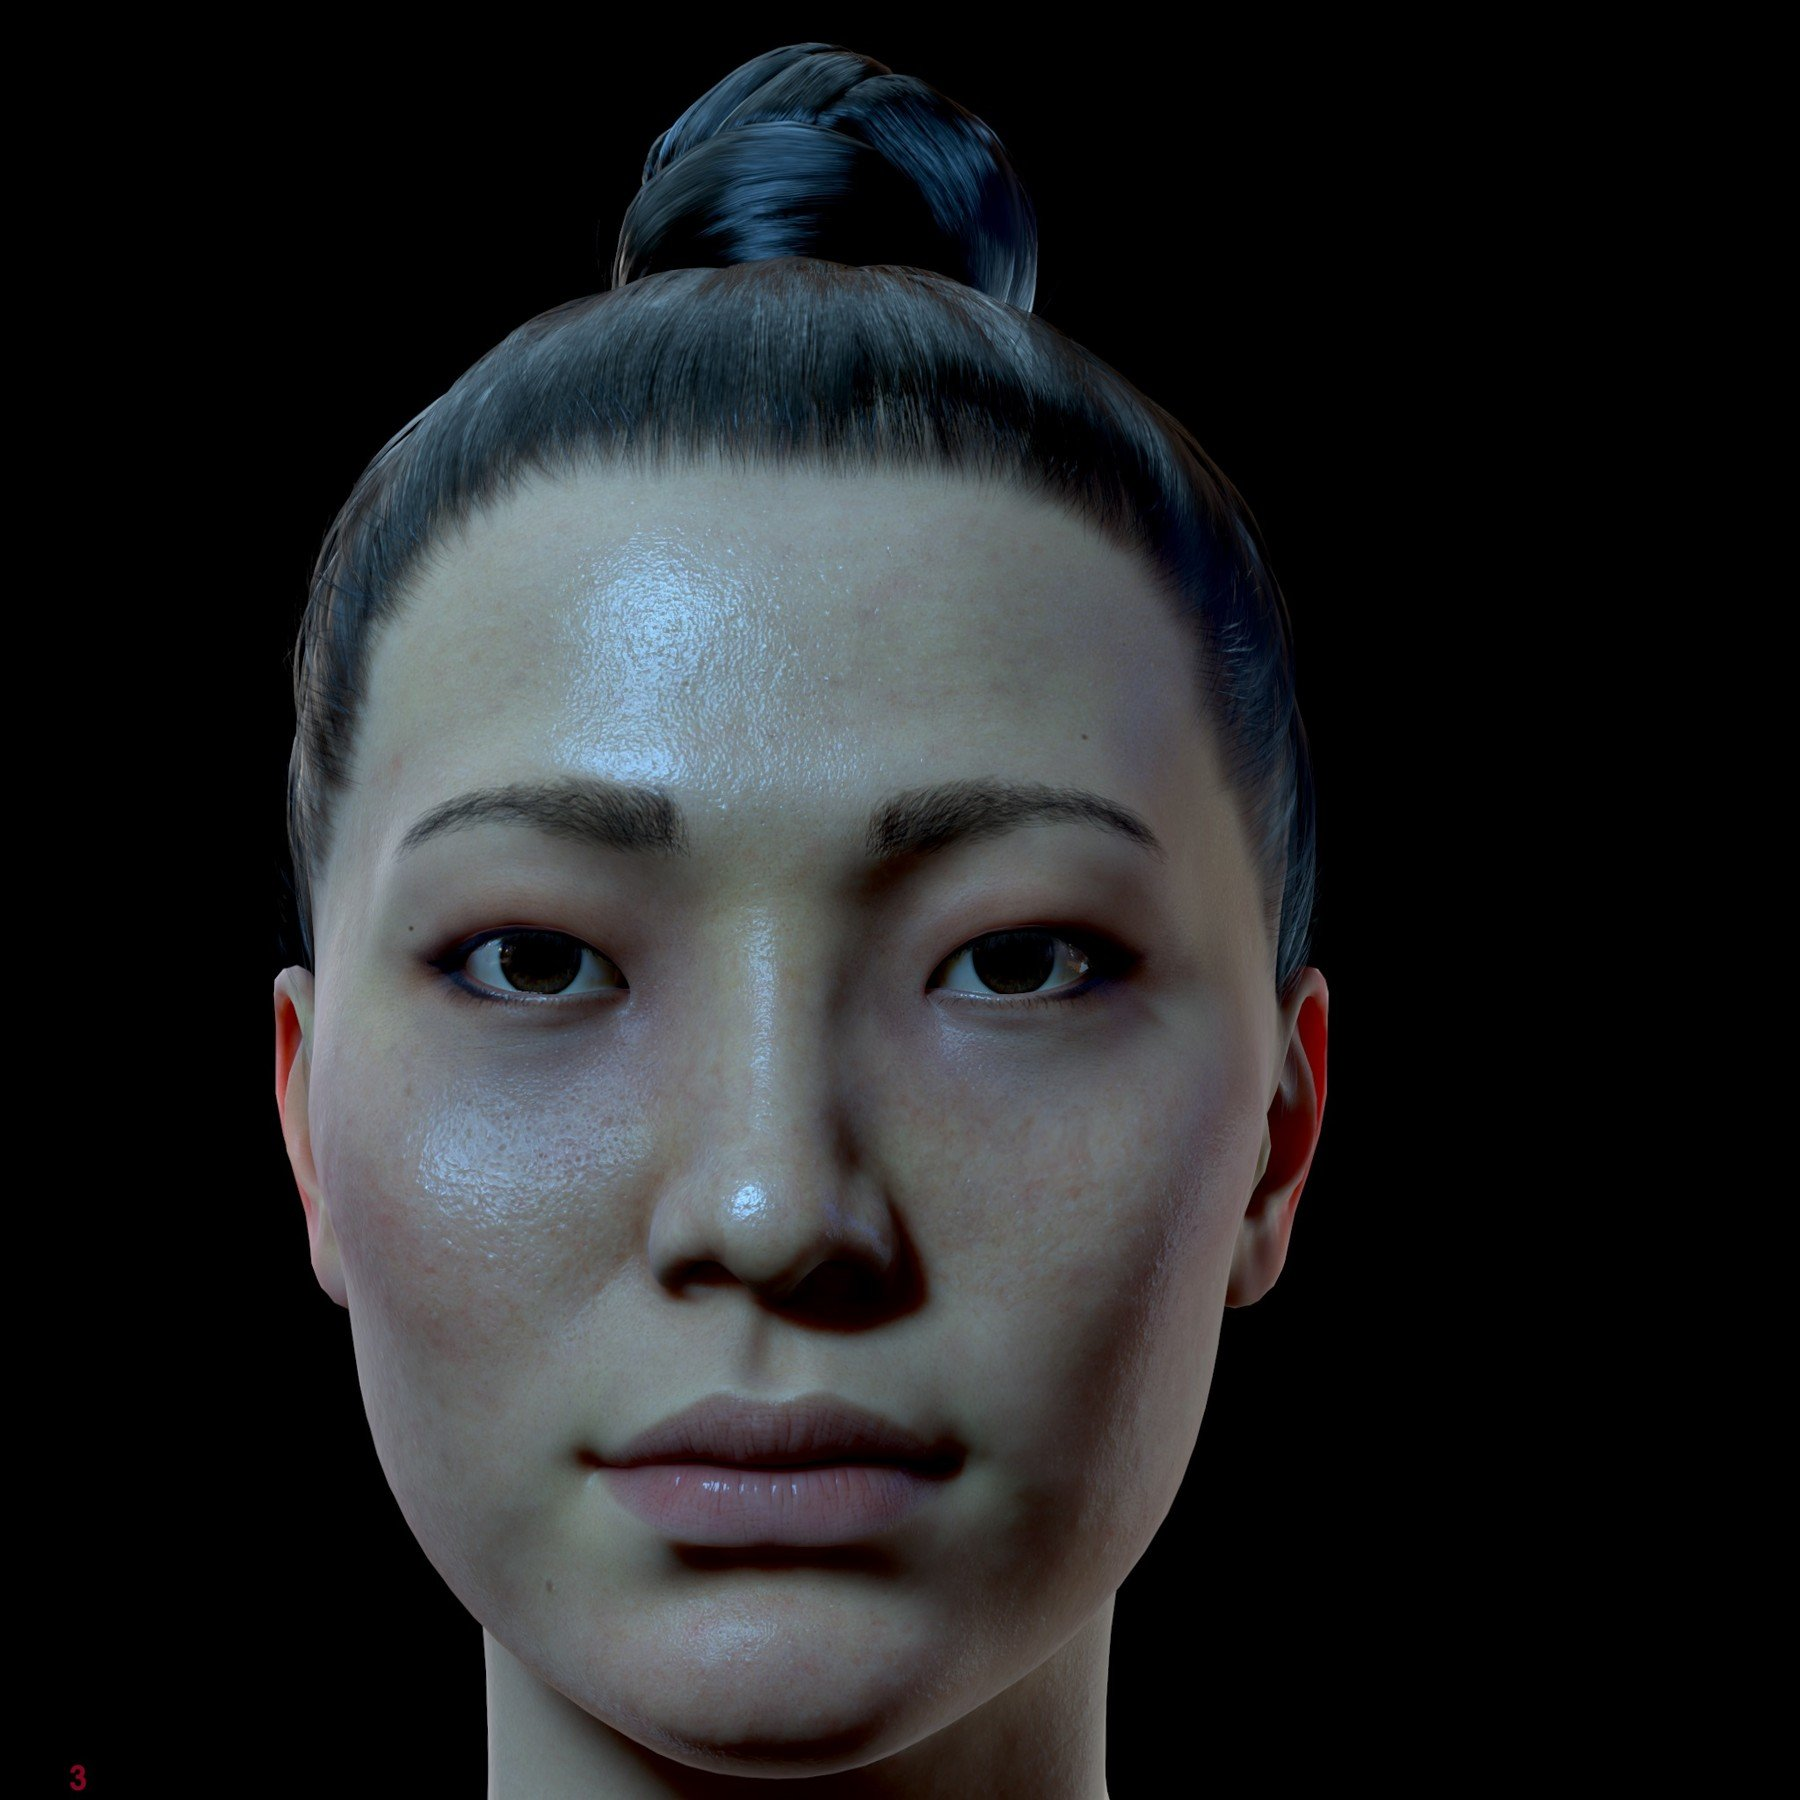 Averageasianfemale by alexlashko preview 29